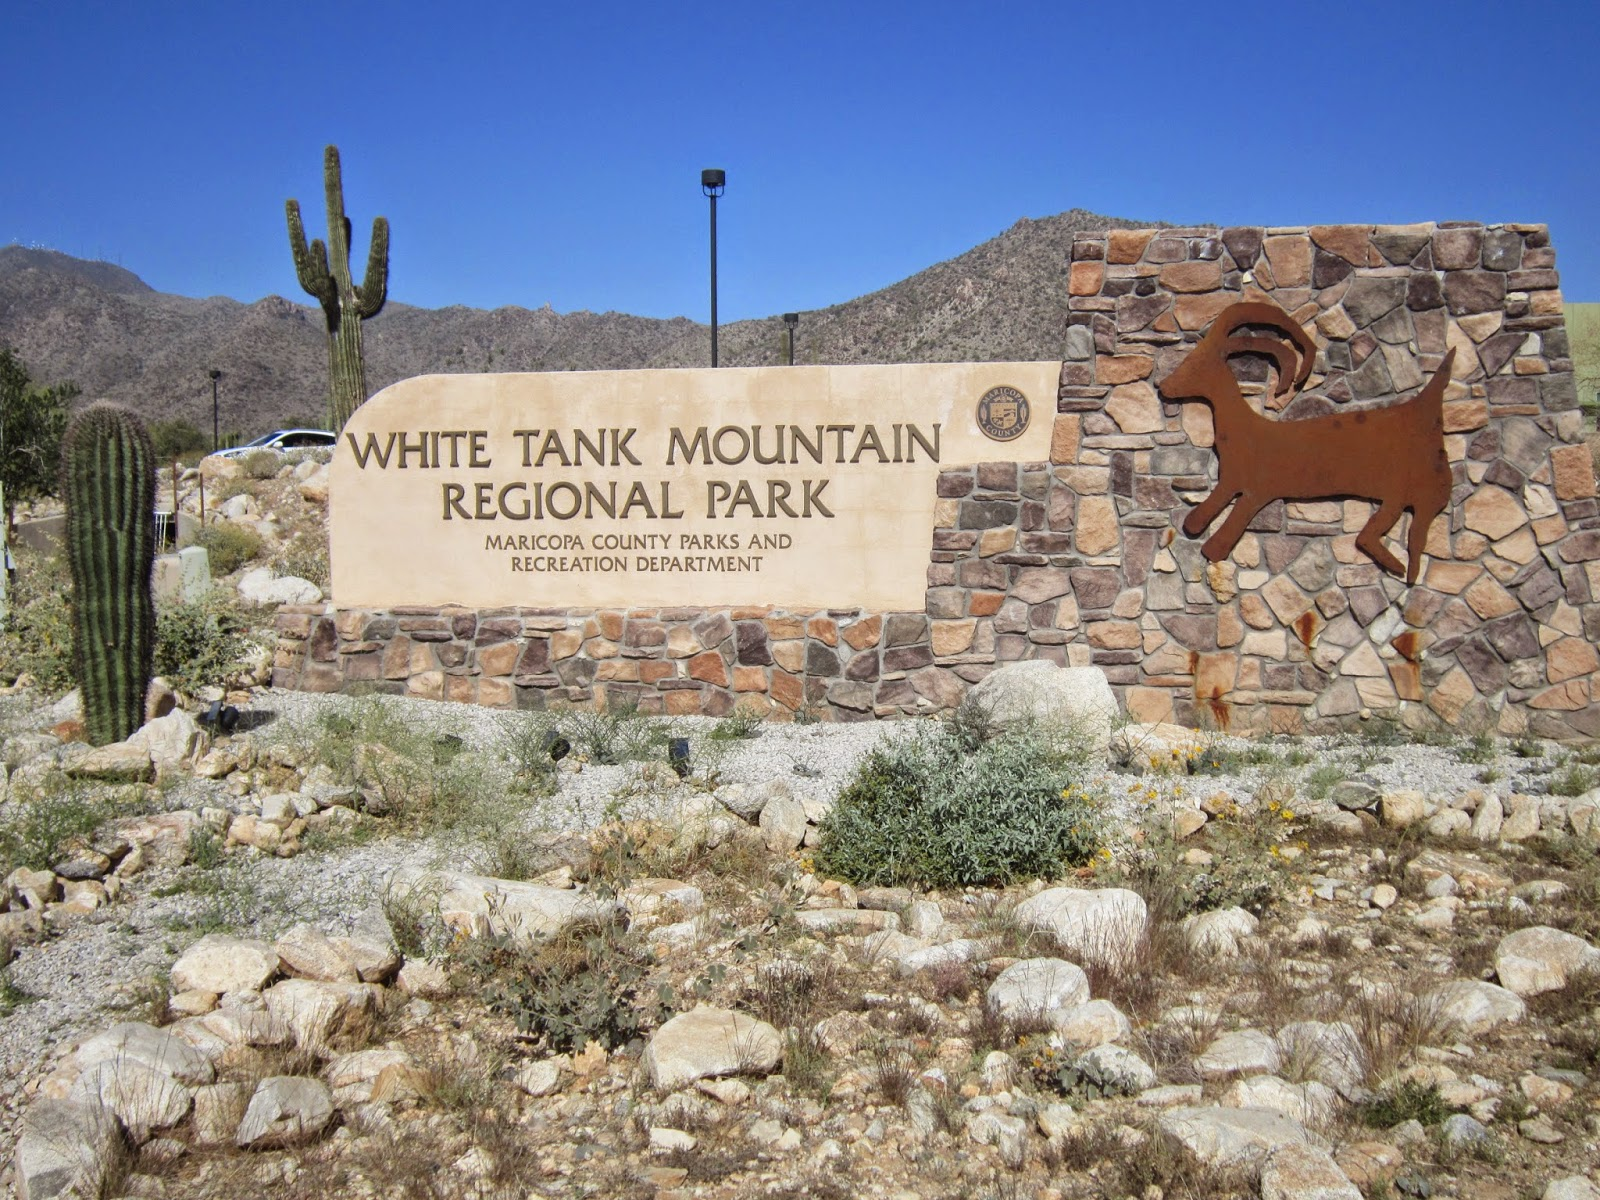 Full Time Rving White Tank Mountain Regional Park Waddell Az